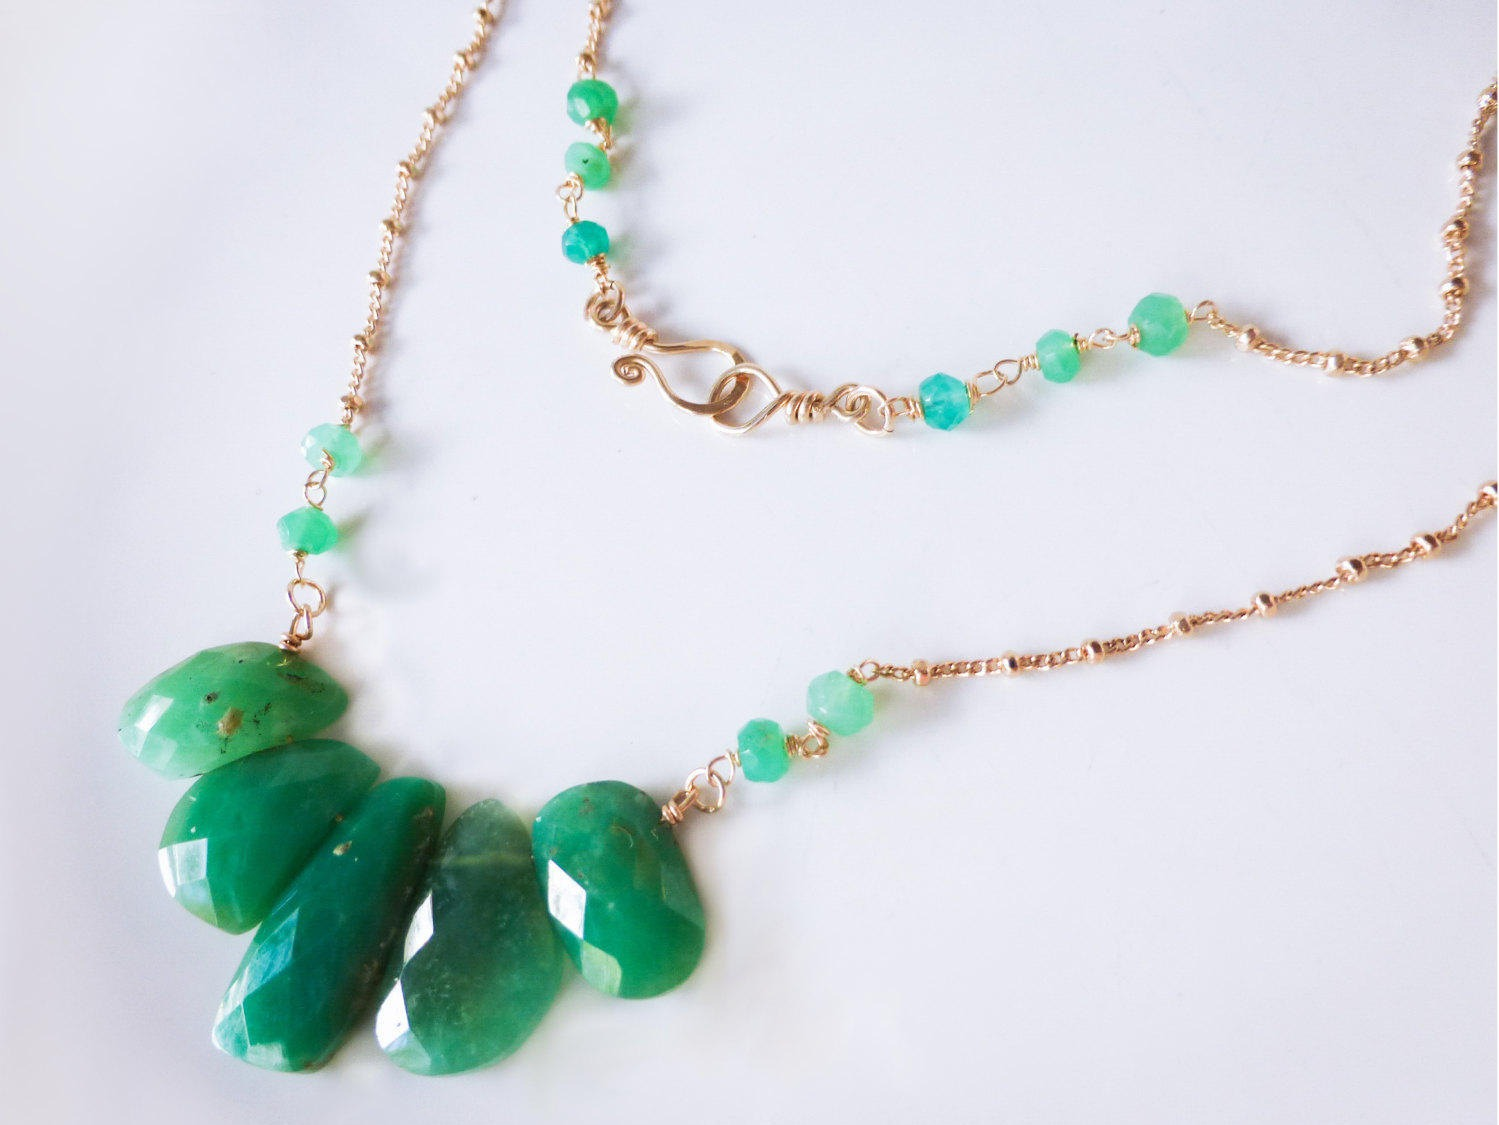 rg jacquie chain aiche products chrysoprase dia bottle small potion necklace aladdin